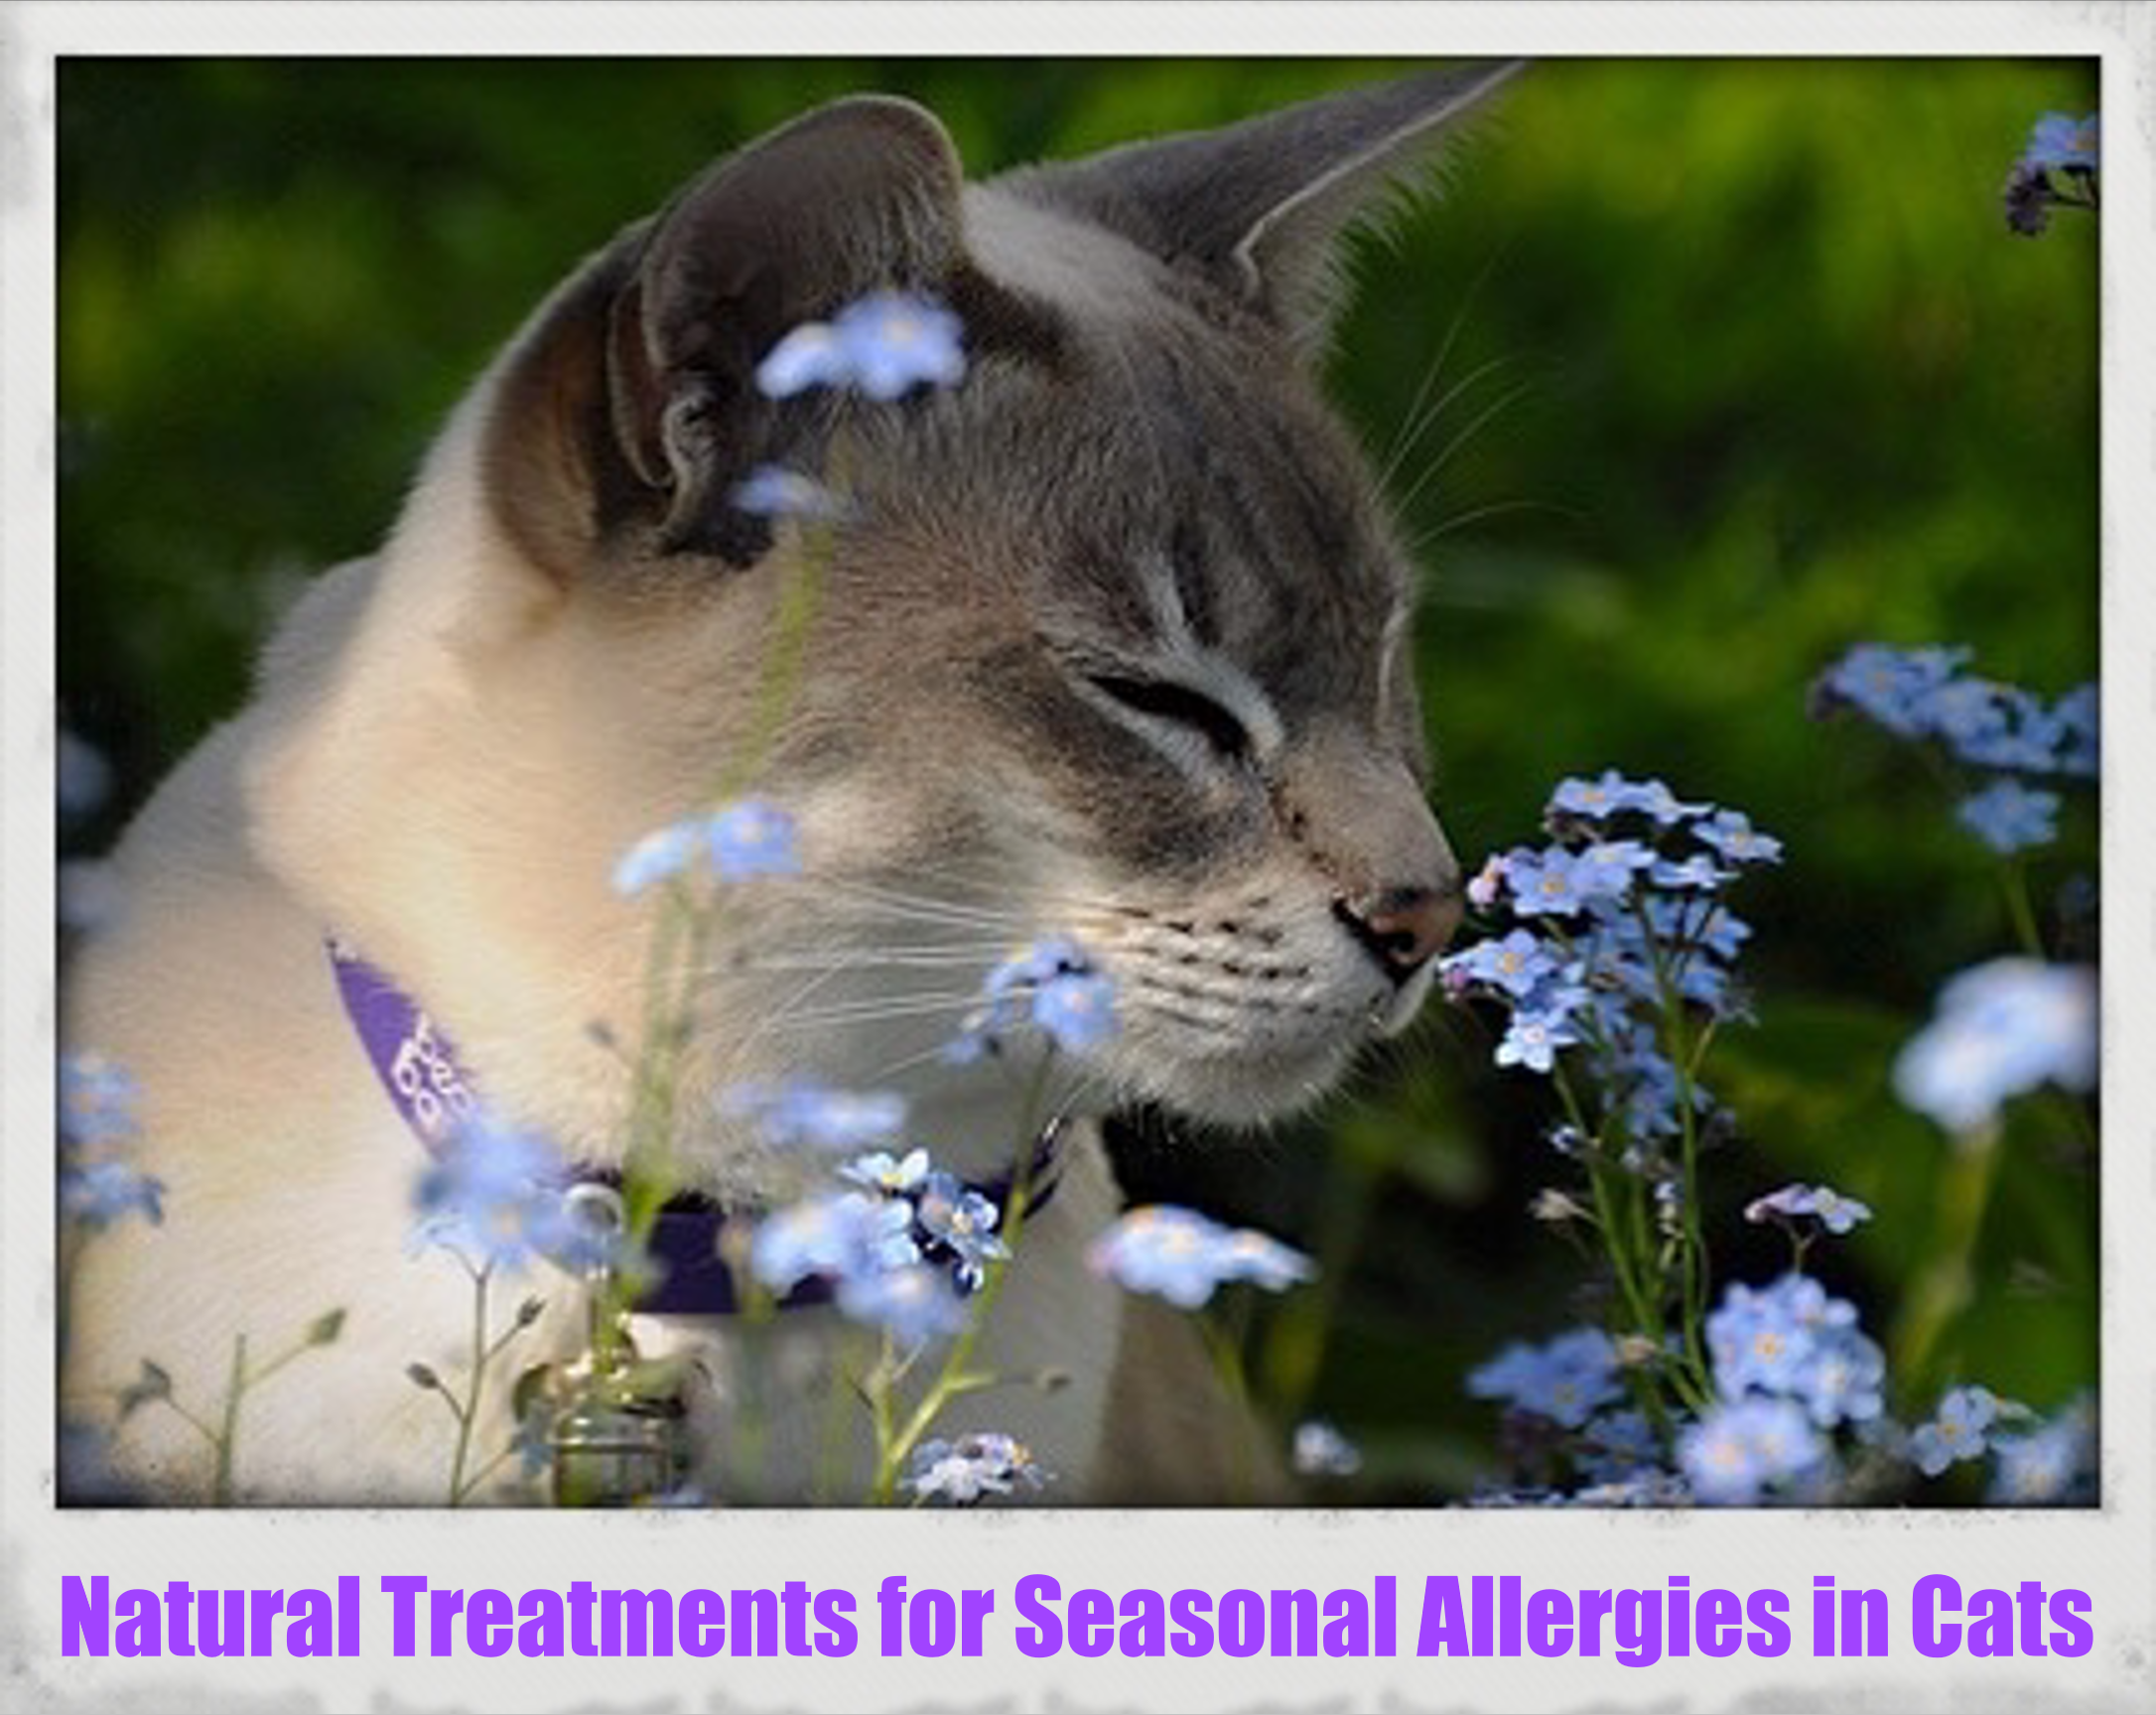 Just like humans, cats can suffer from seasonal allergies